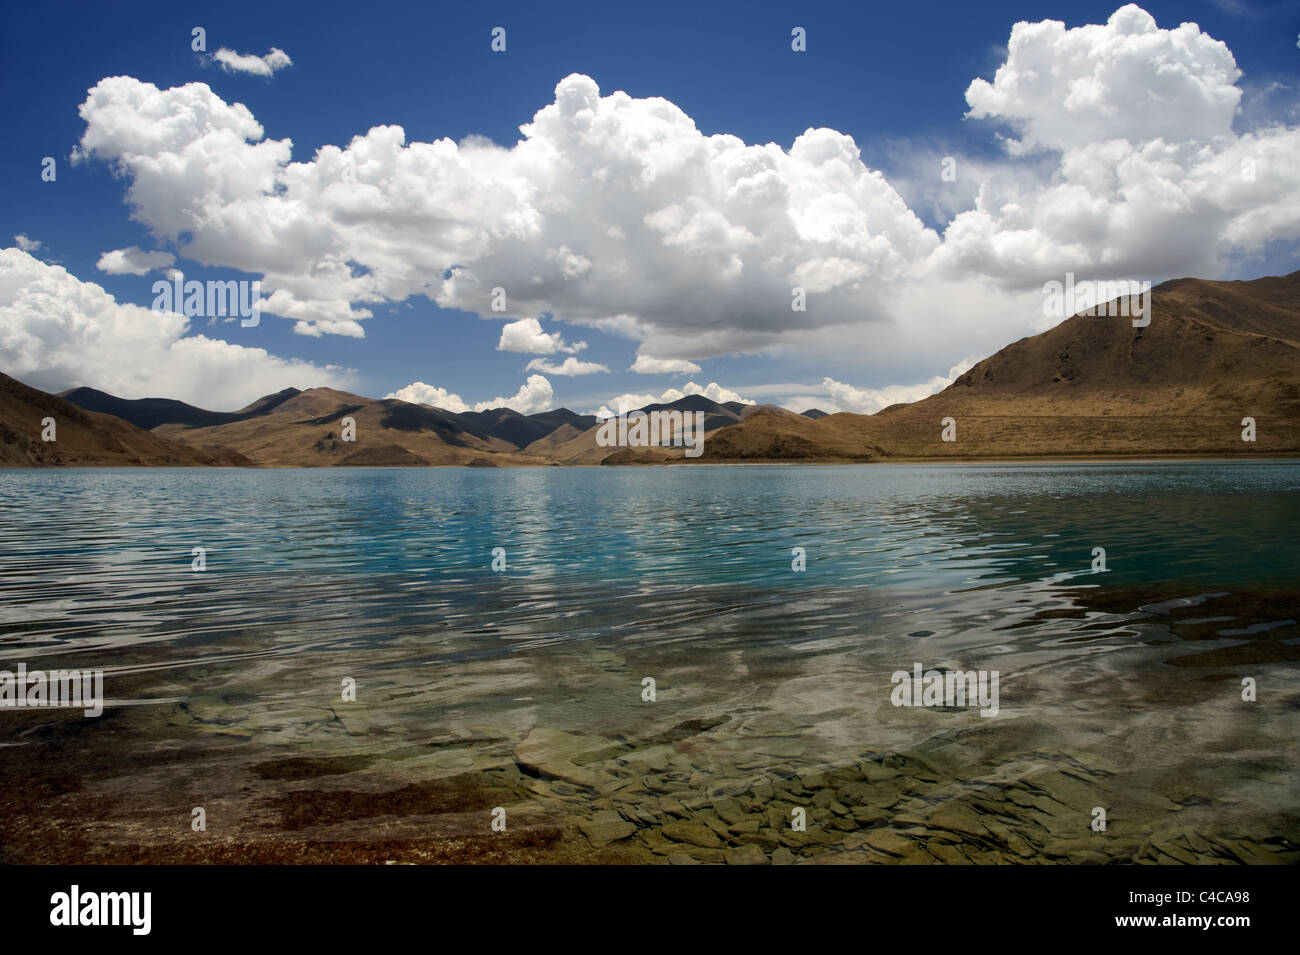 Landscape of lake and mountains in Himalaya in Tibet - Stock Image